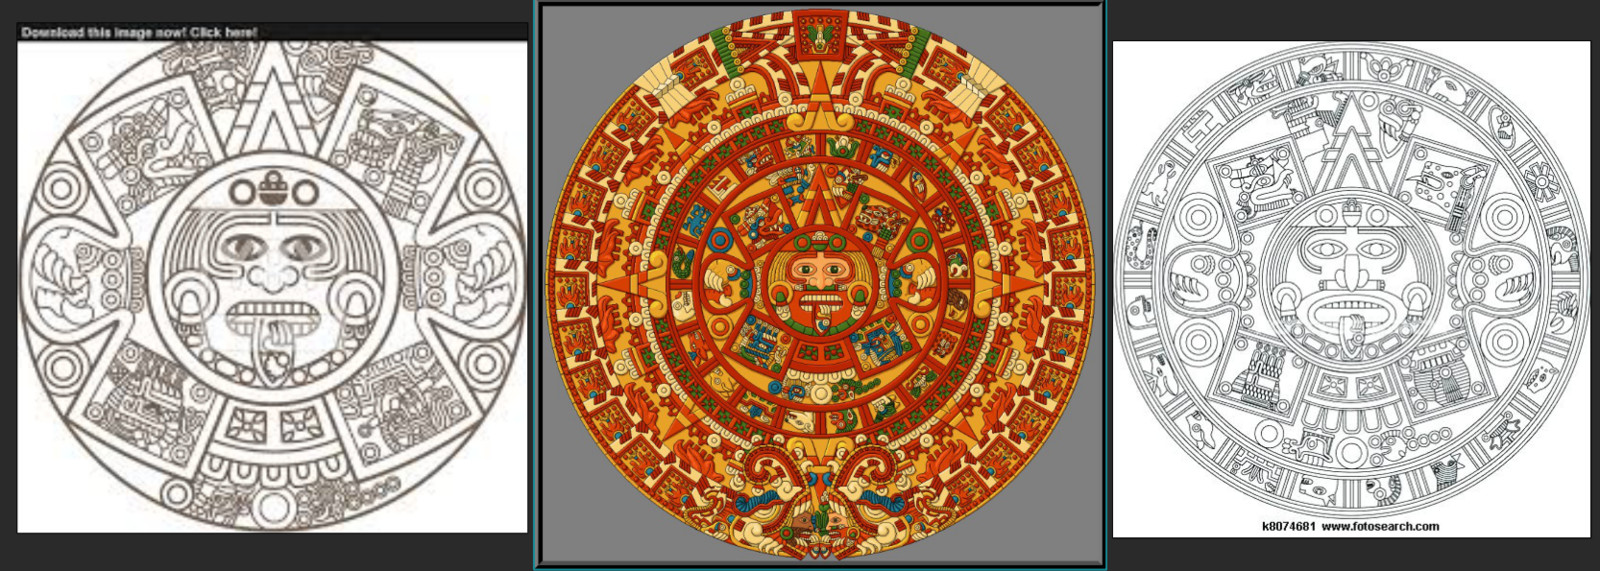 Theres Many illustrated version of the Aztec Sun Stone